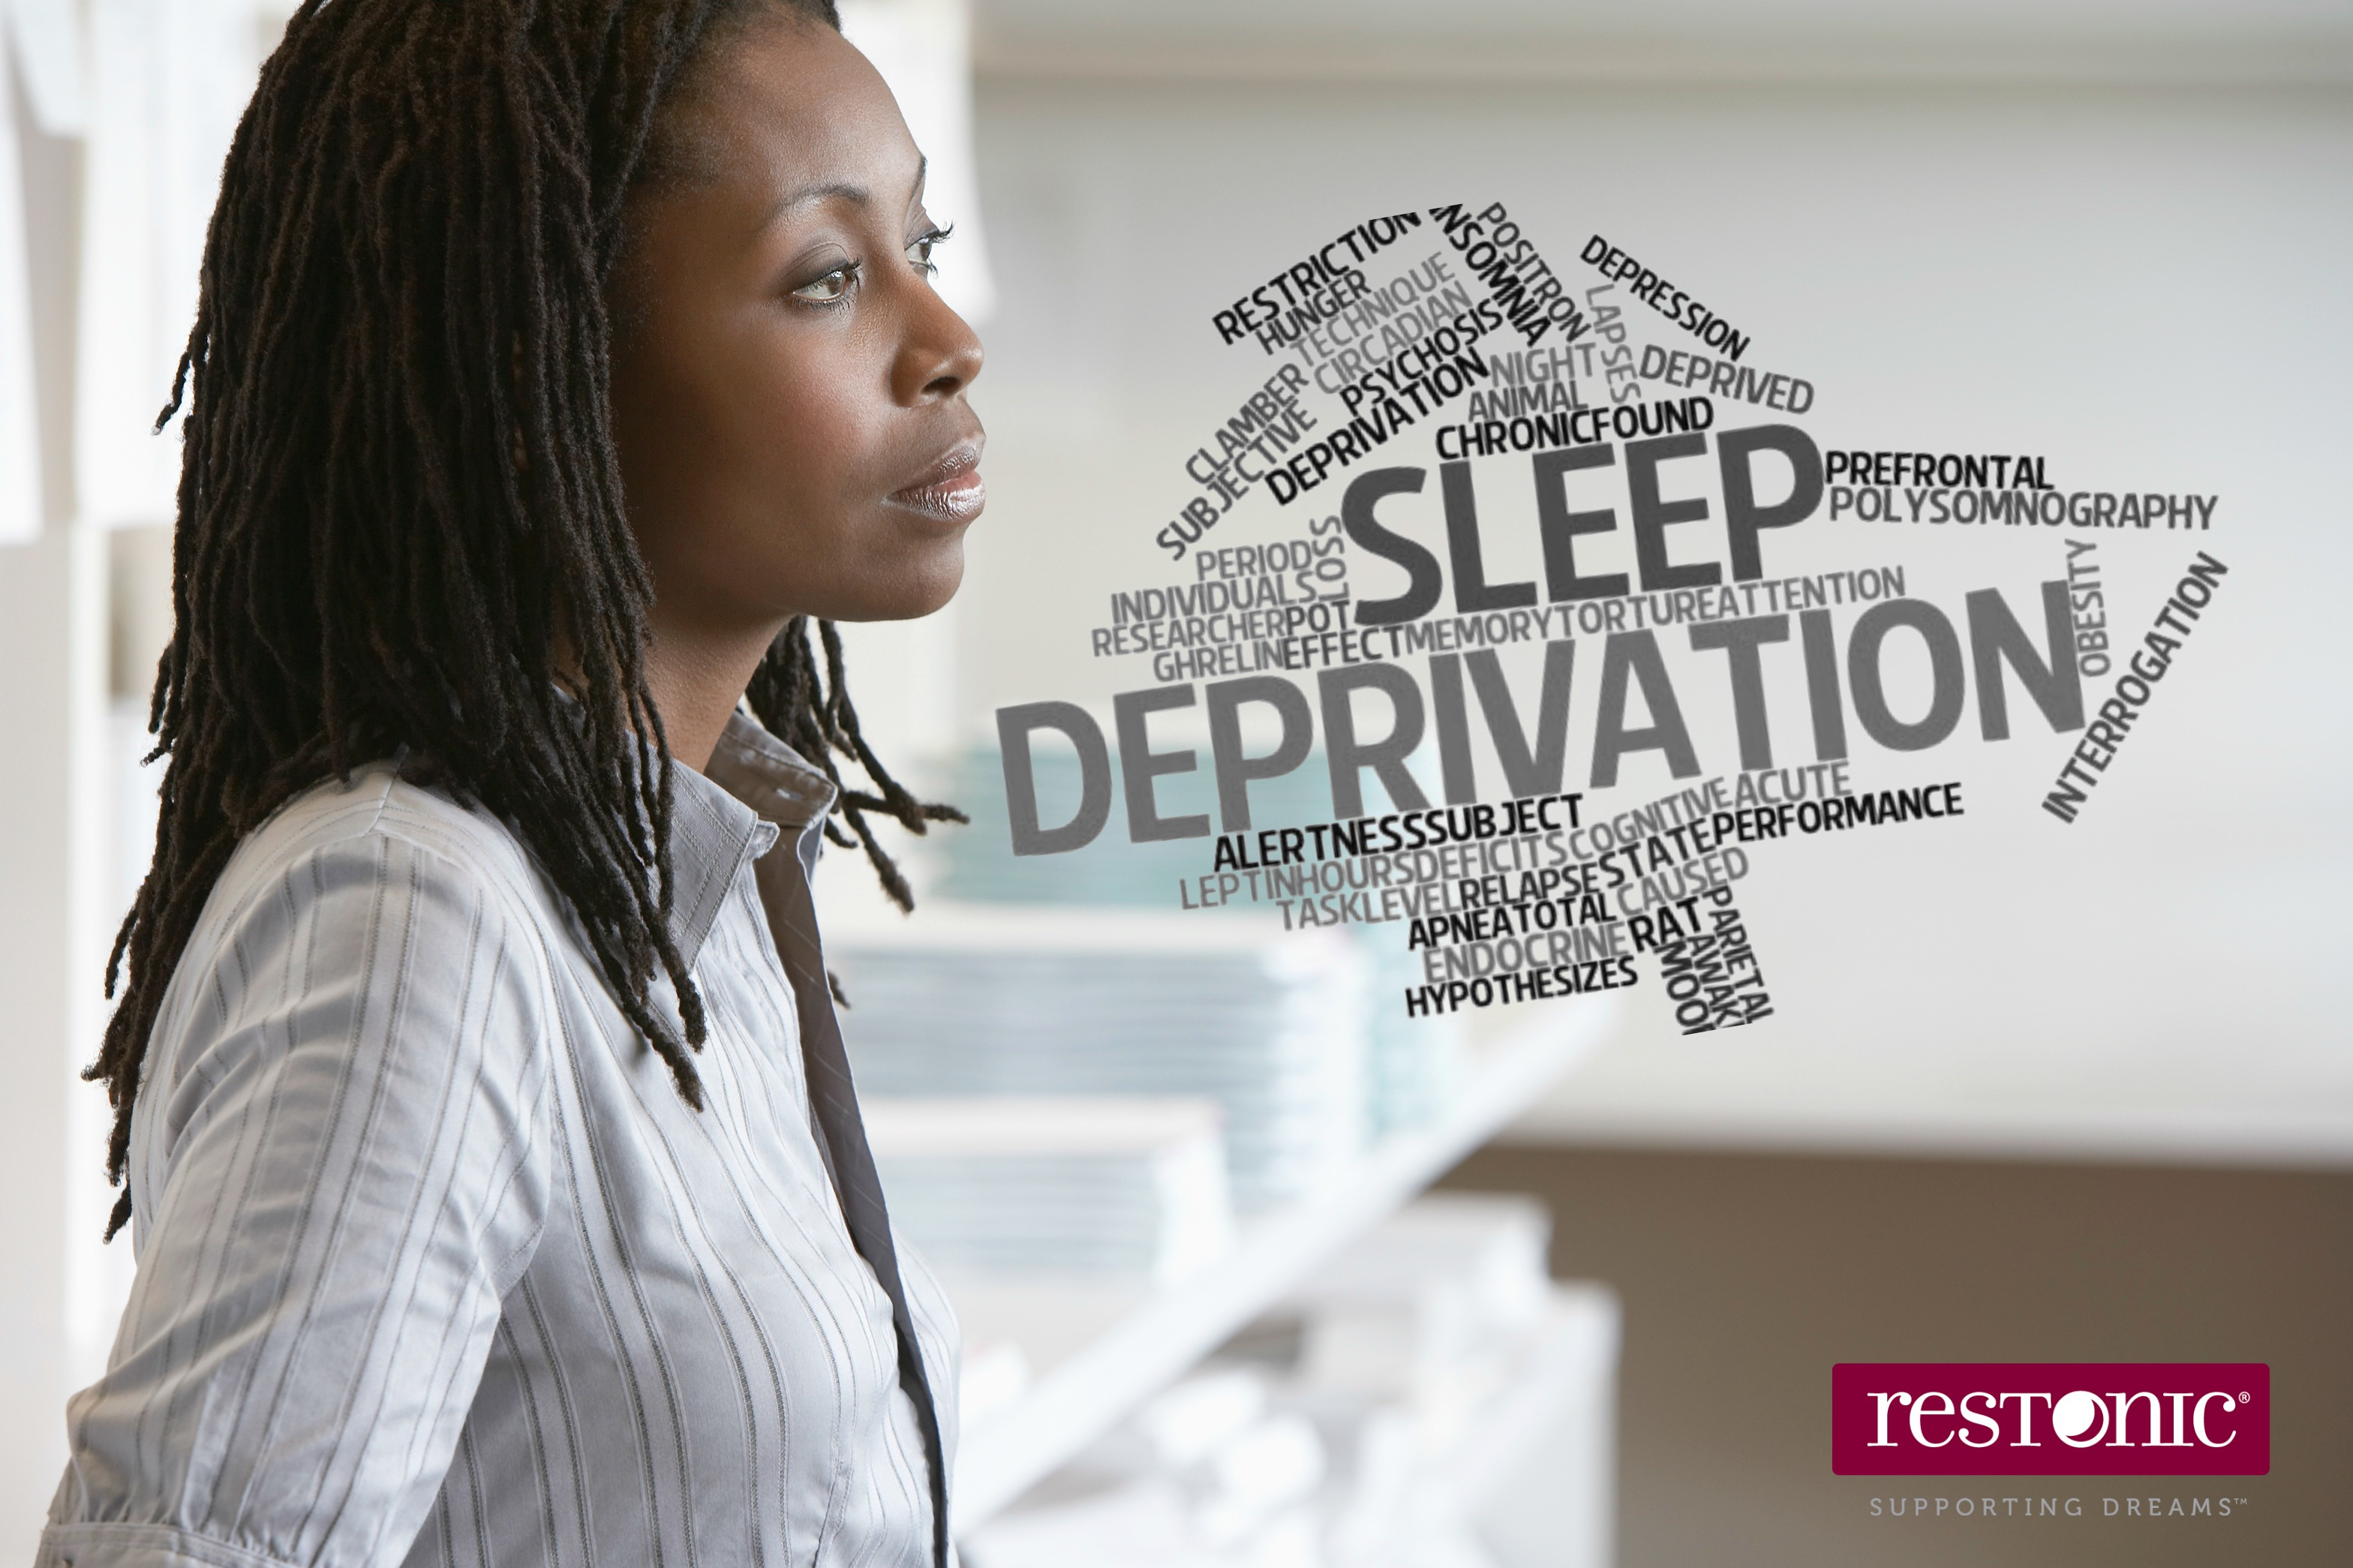 Woman pondering how shiftwork and irregular bedtimes wreak havoc on her sleep. | Word cloud on Sleep Deprivation